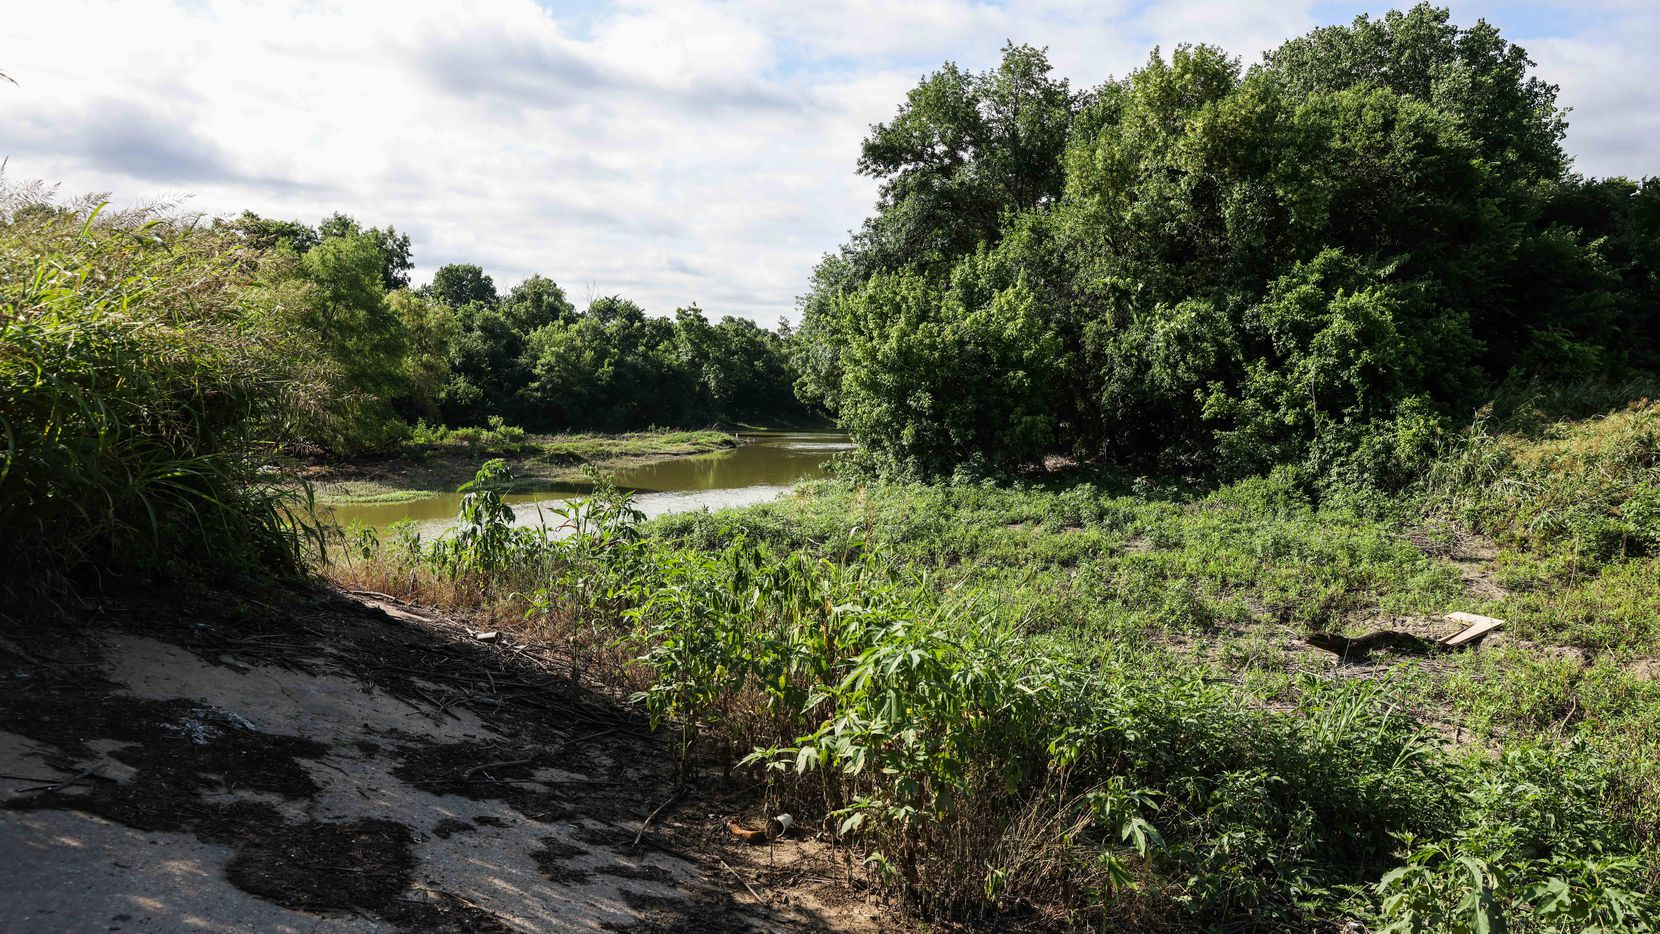 During a hike south from Military Parkway, one of the views from what will become the second segment of the Trinity Forest Spine Trail.  The Spine Trail is one of four projects, totaling 11 miles, that the Circuit Trail Conservancy is responsible for building to link another 39 existing miles of trail into a continuous Loop Trail around Dallas.